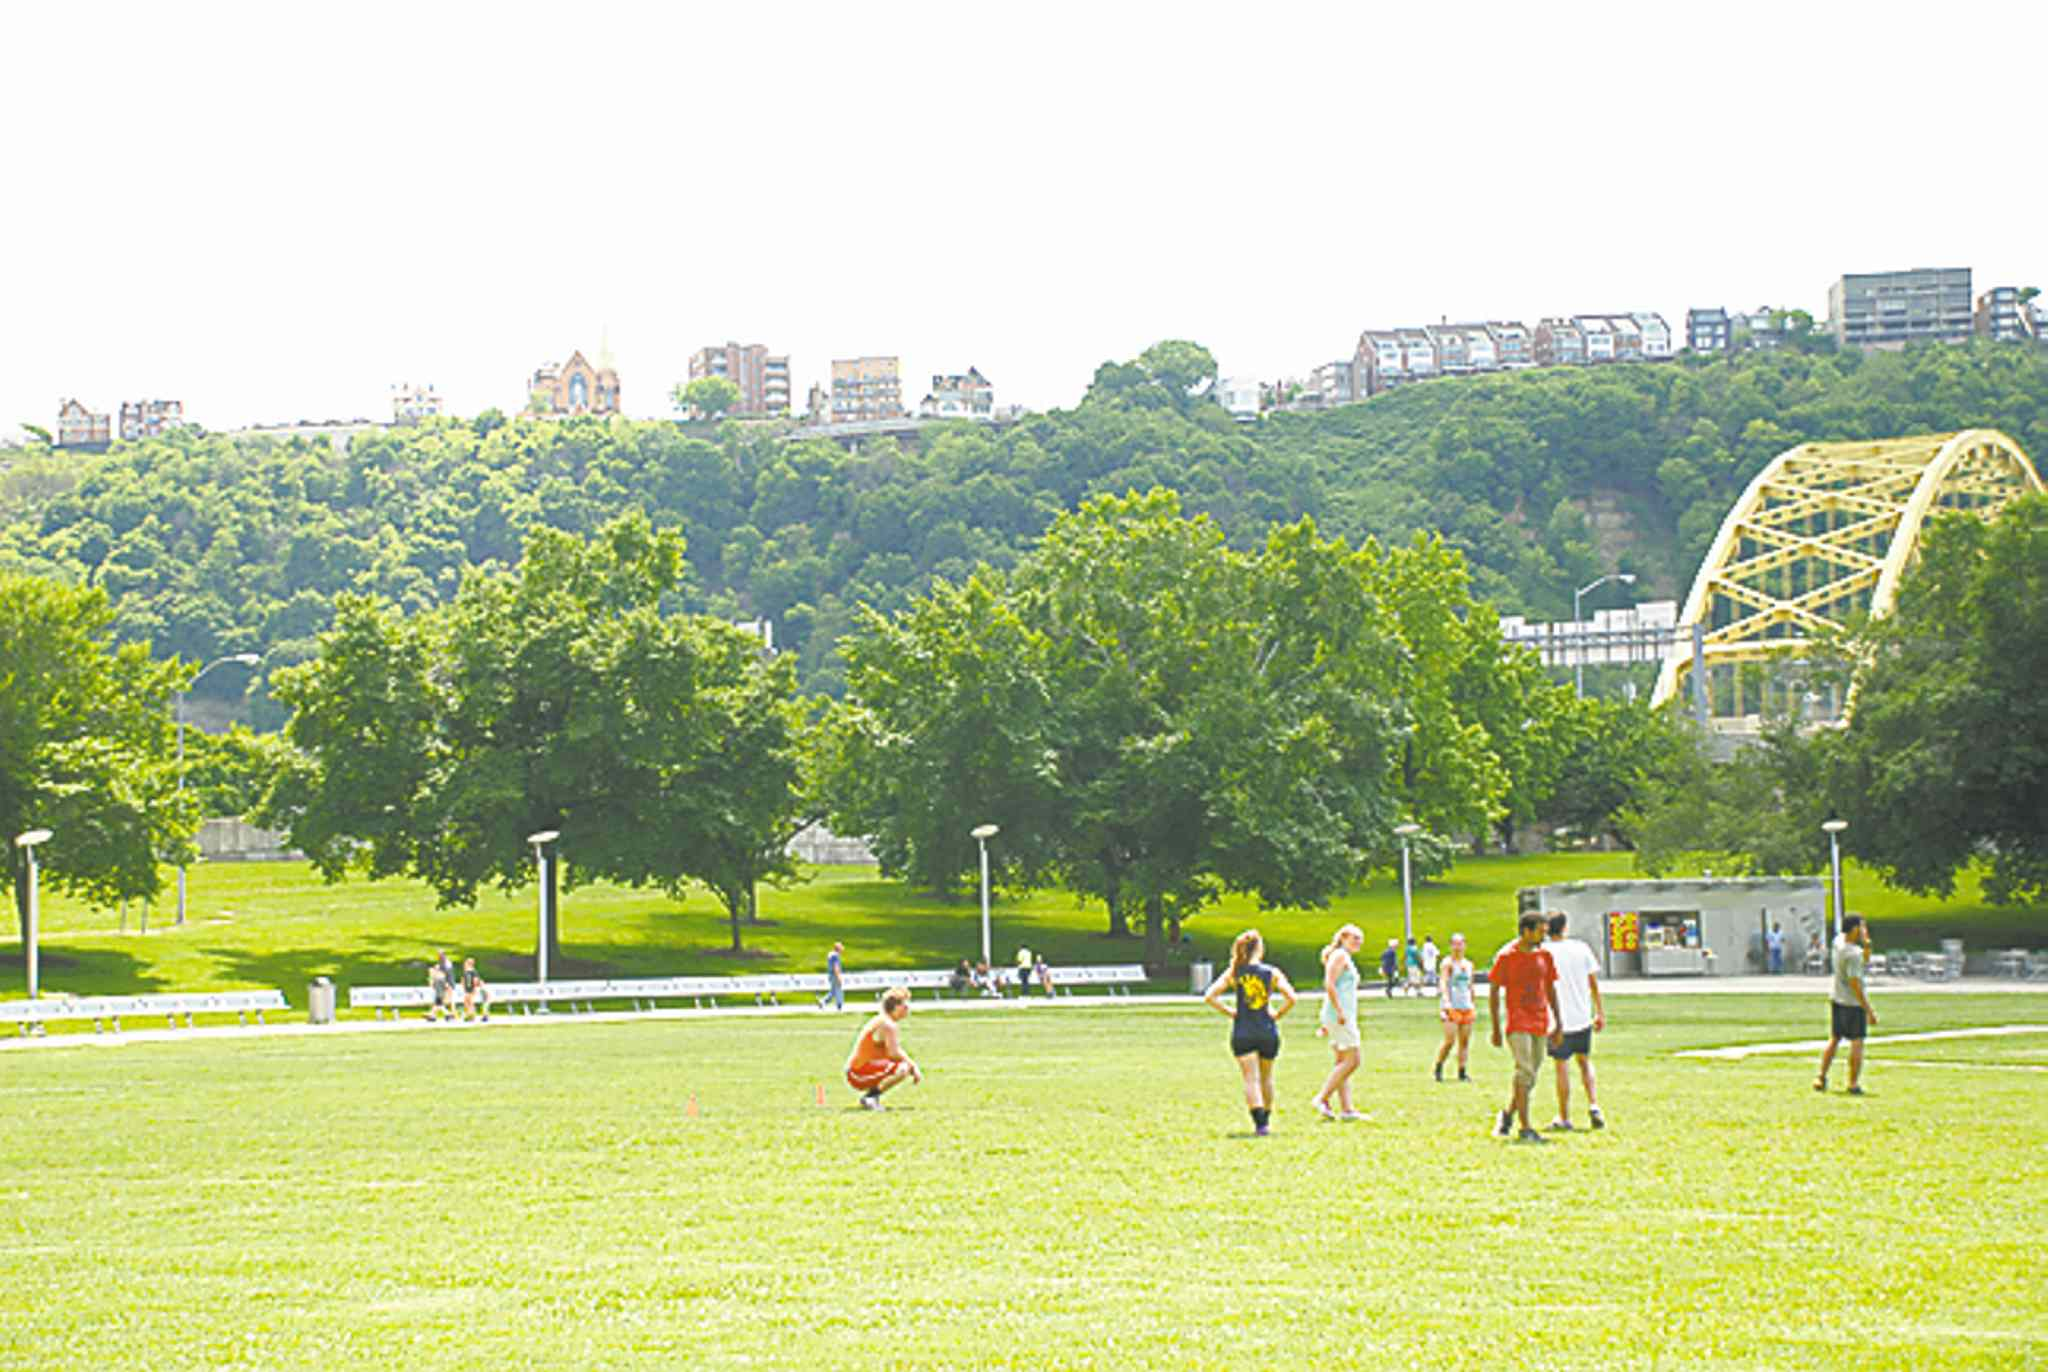 Pittsburgh is a green city with loads of parks, valleys and bridges.